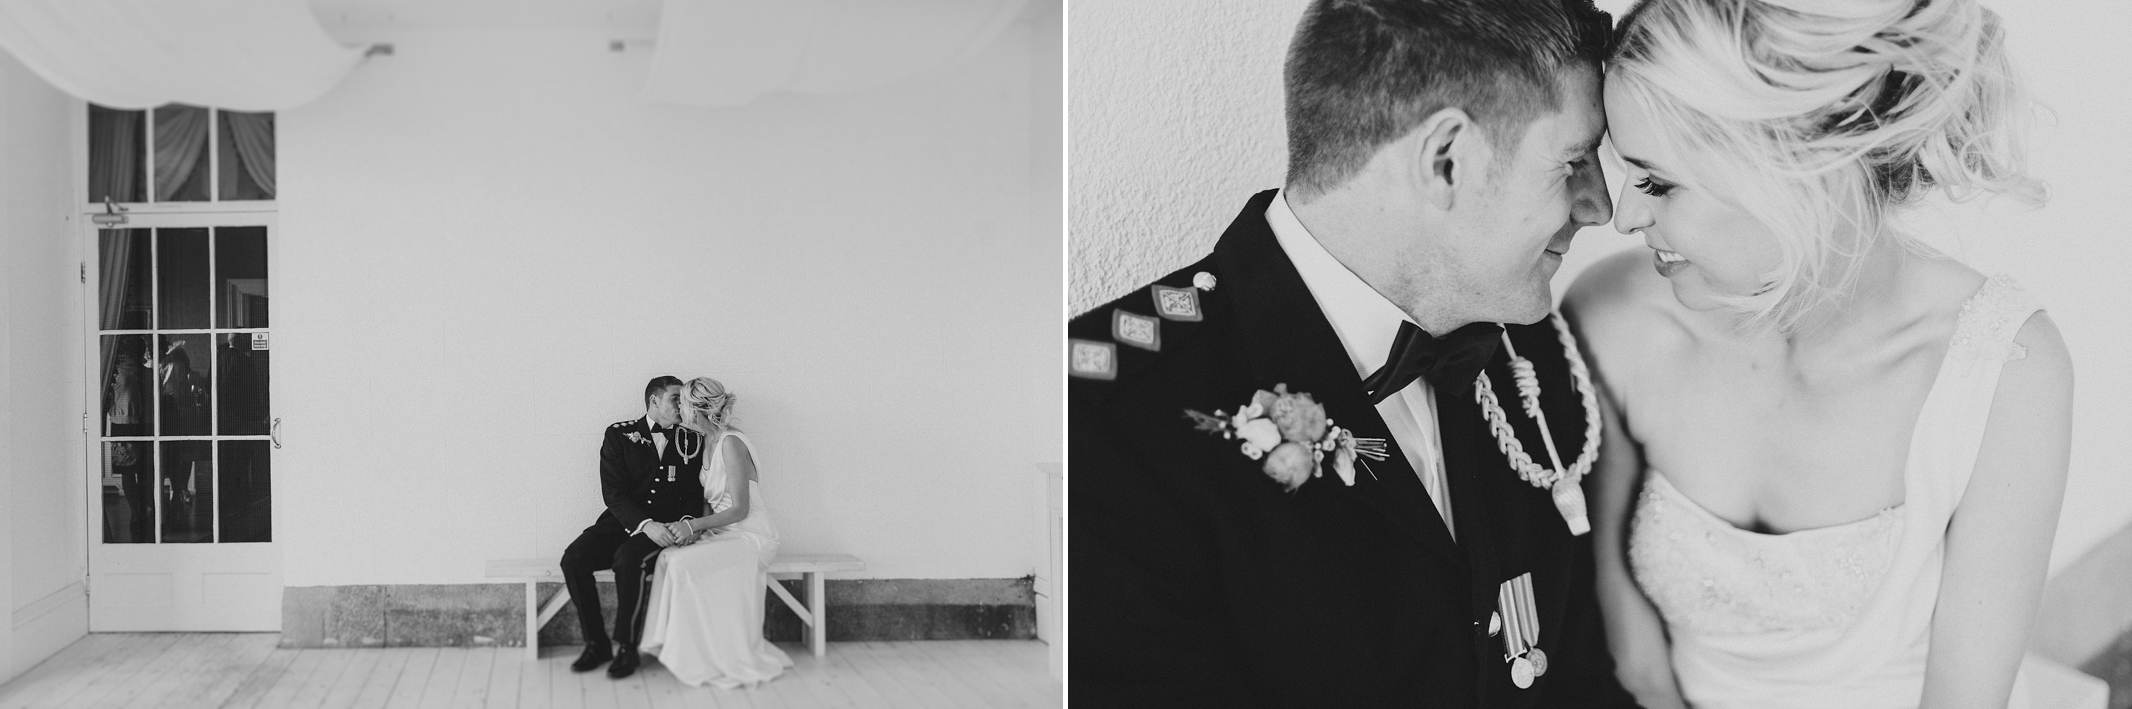 Wedding photographer Ireland Graciela Vilagudin 756.jpg